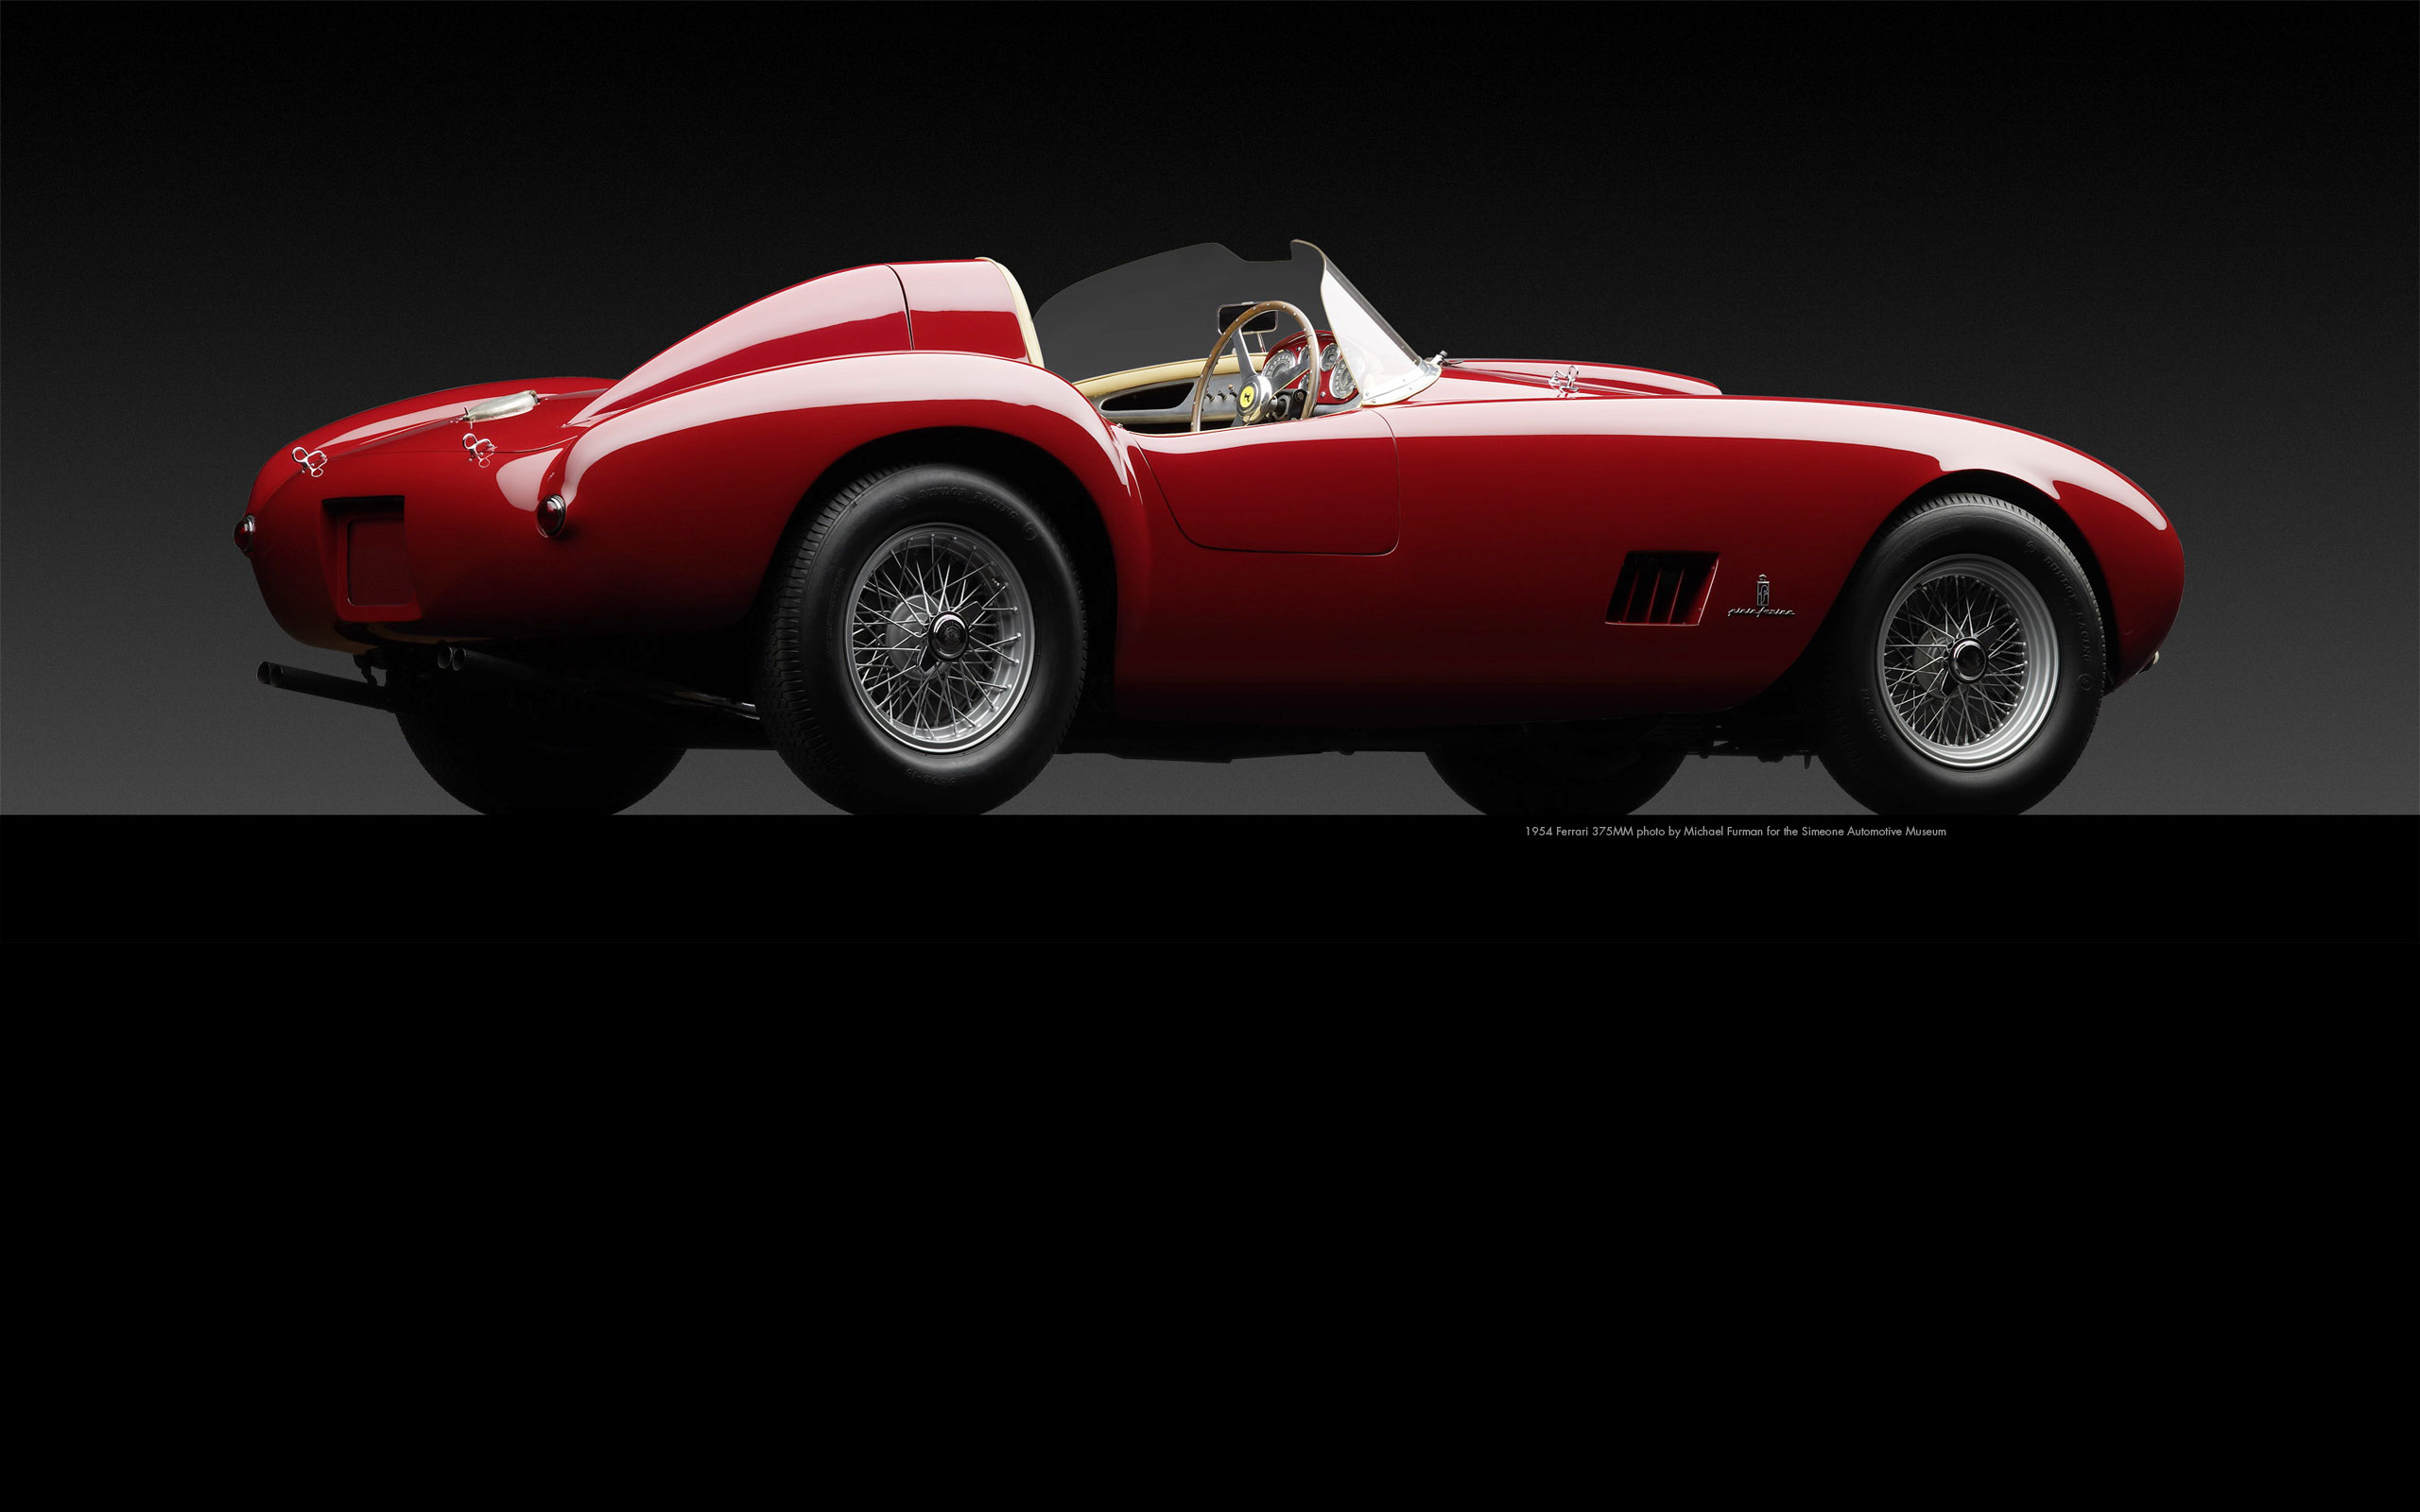 Exotic & Classic Car Dealership specializing in Ferrari, Porsche ...